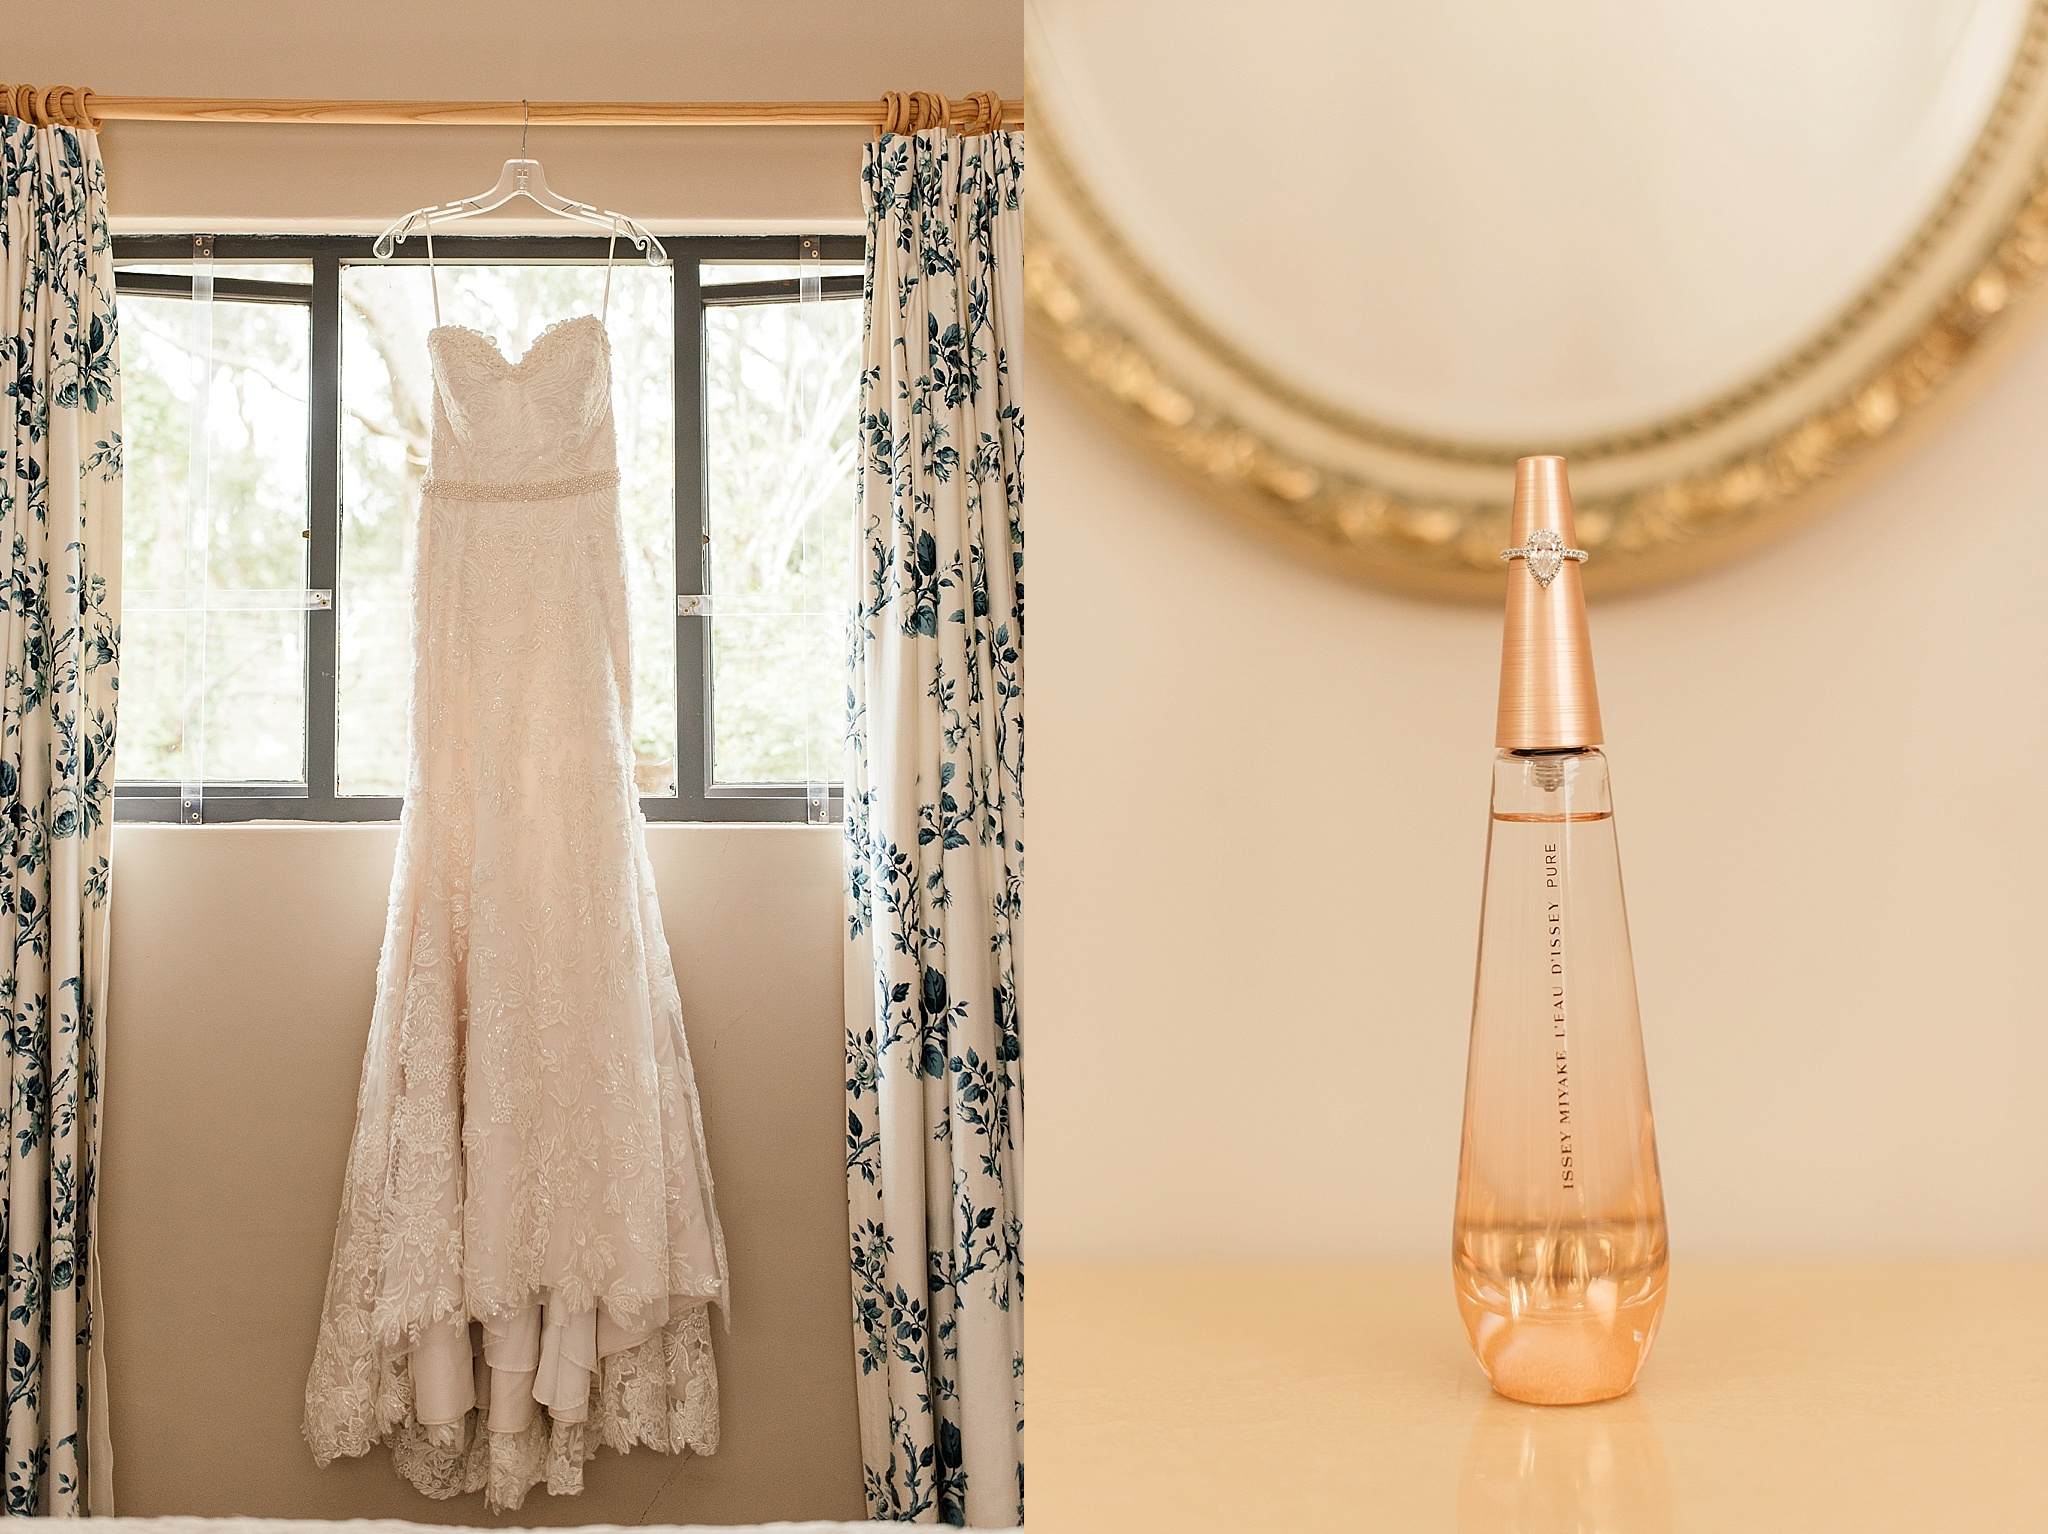 Cape Town Wedding Photographer Darren Bester - SuikerBossie - Stephen and Mikaela_0007.jpg